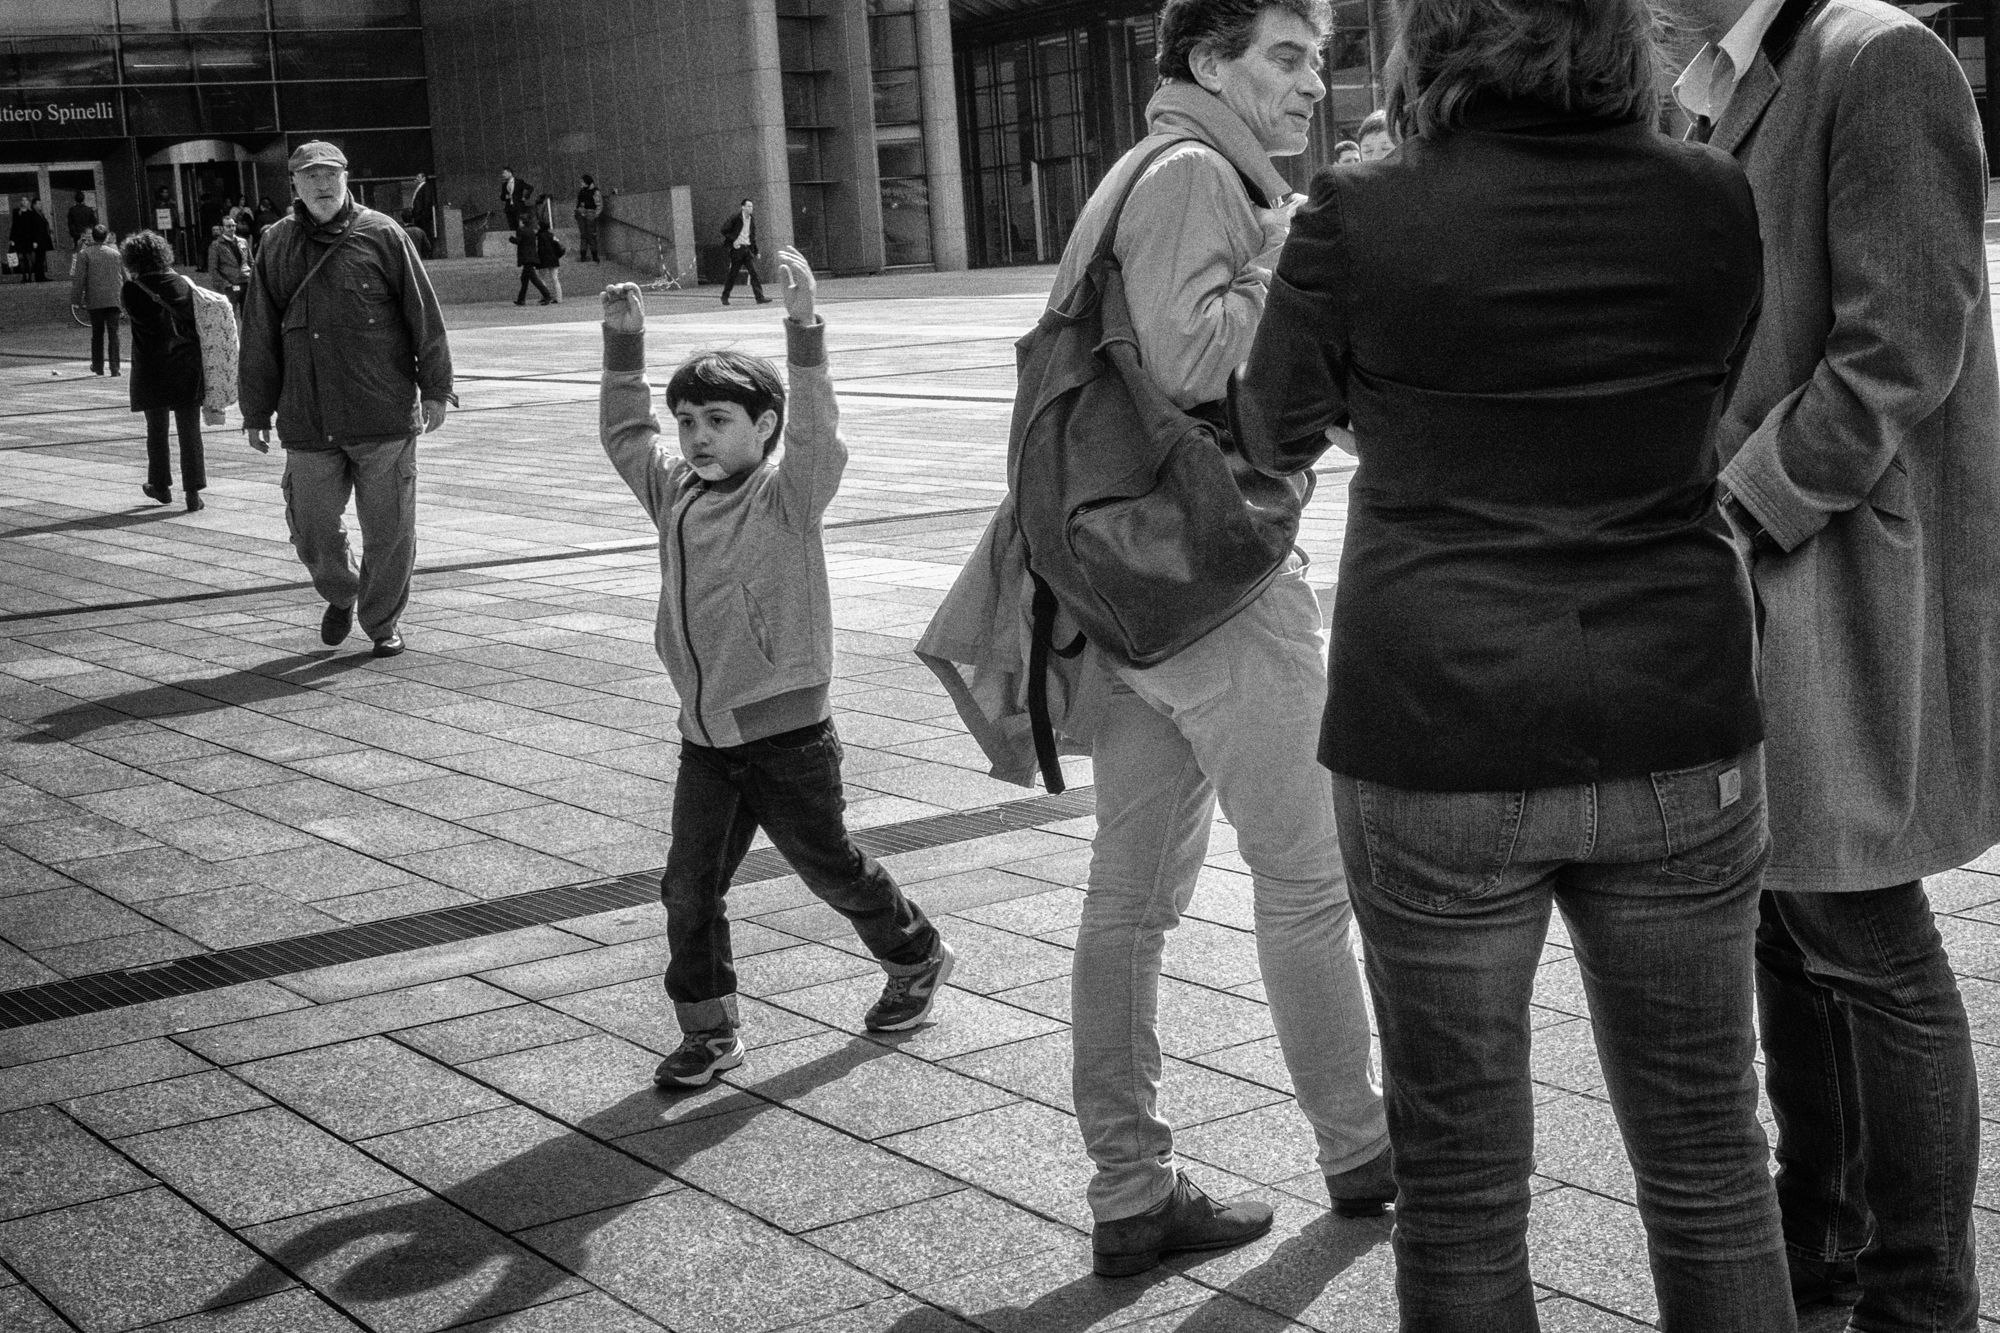 Daily_life-2015-04-Brussels, Belgium-01